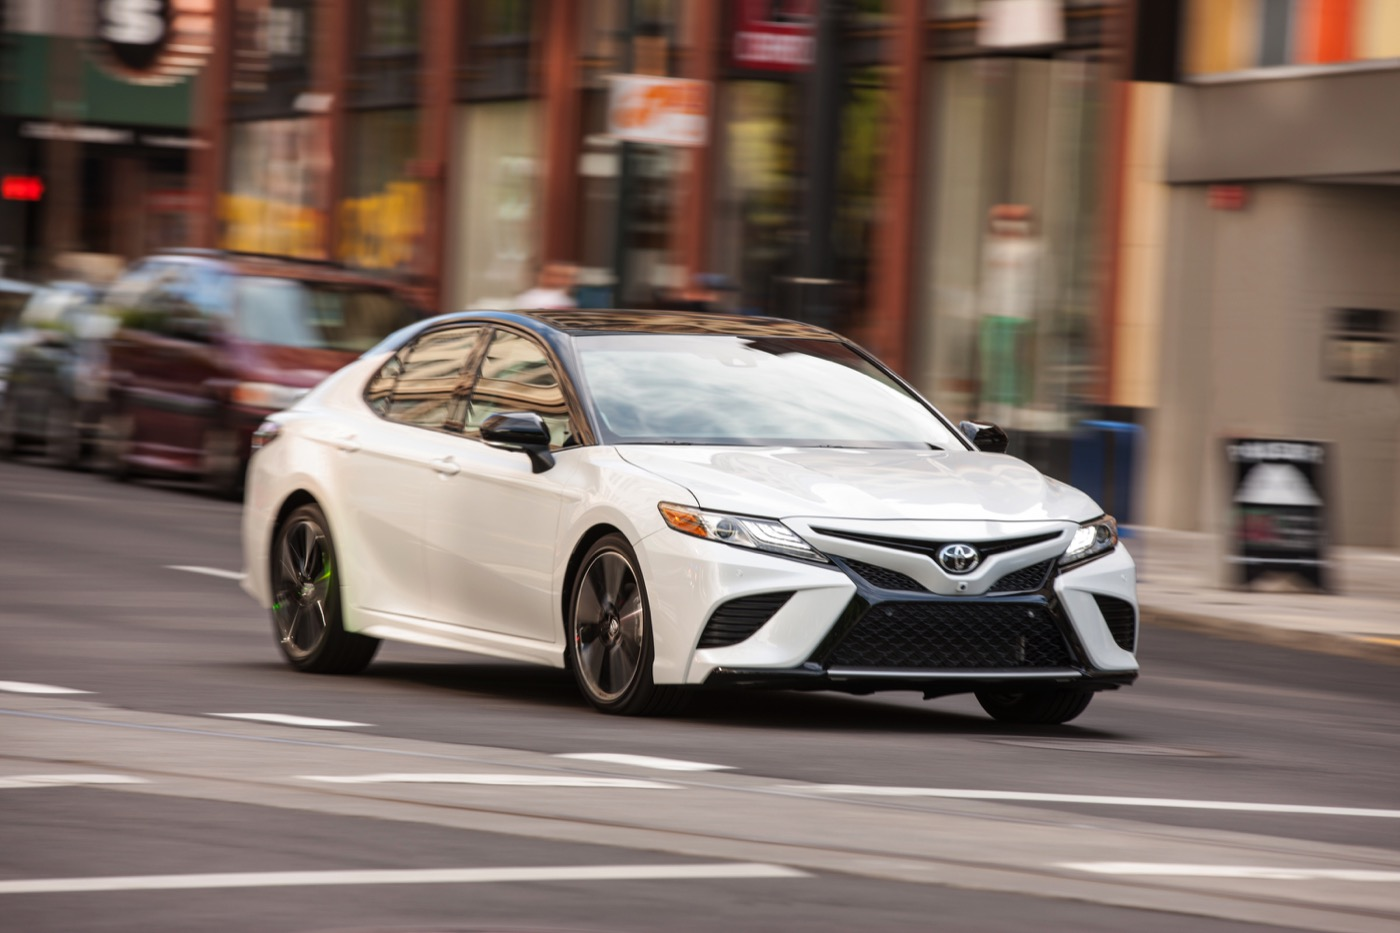 Lease 2018 Toyota Camry at AutoLux Sales and Leasing